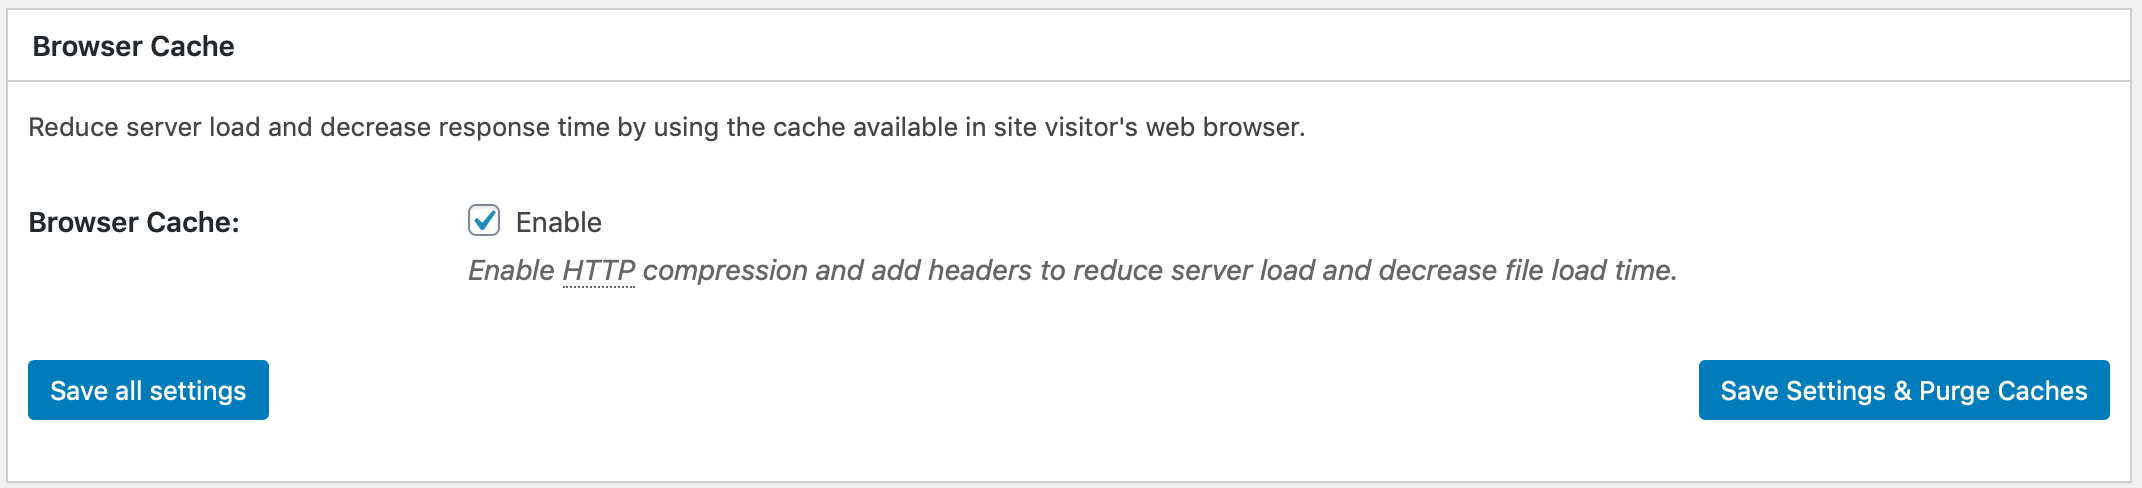 Browser caching settings on W3 Total Cache